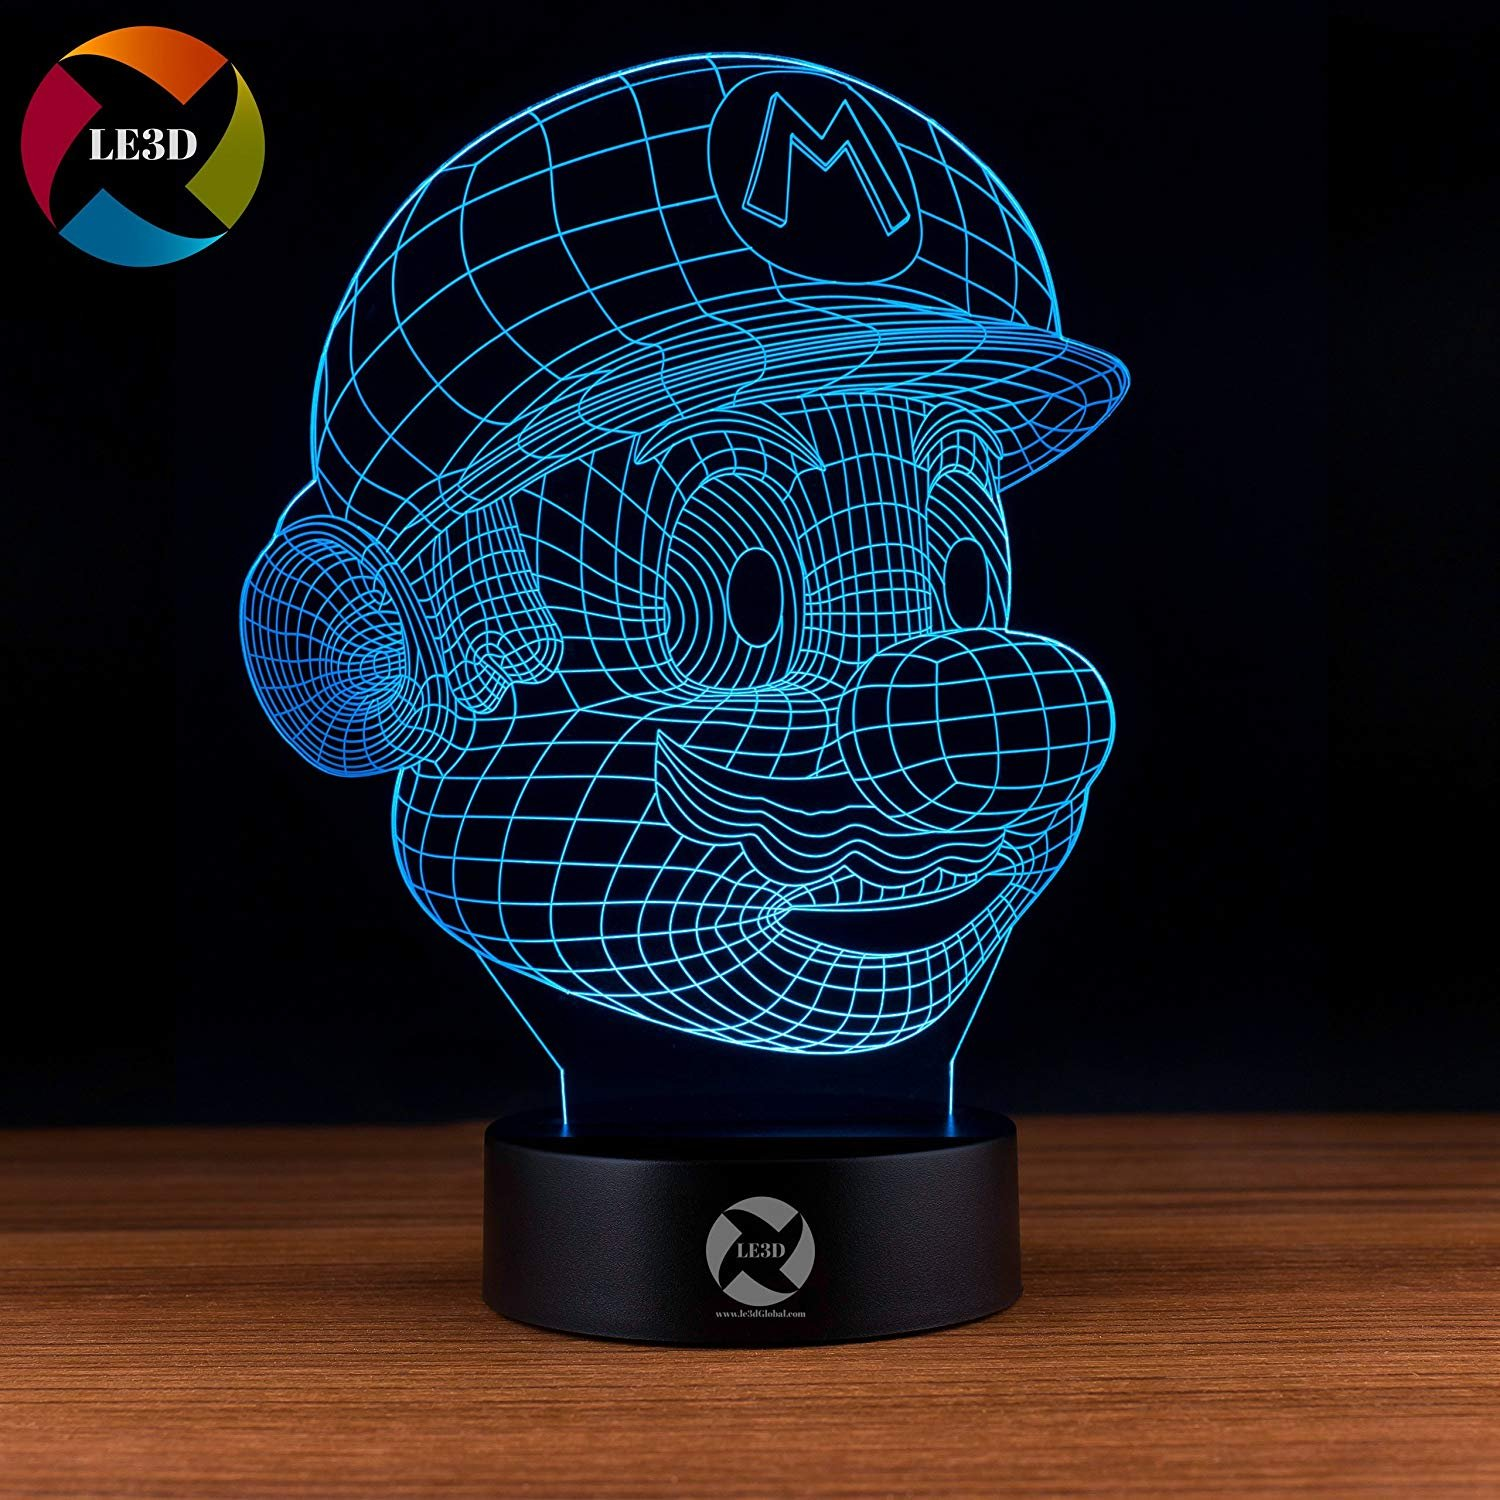 3D Optical Illusion Night Light - 7 LED Color Changing Lamp - Cool Soft Light Safe for Kids - Solution for Nightmares - Super Mario